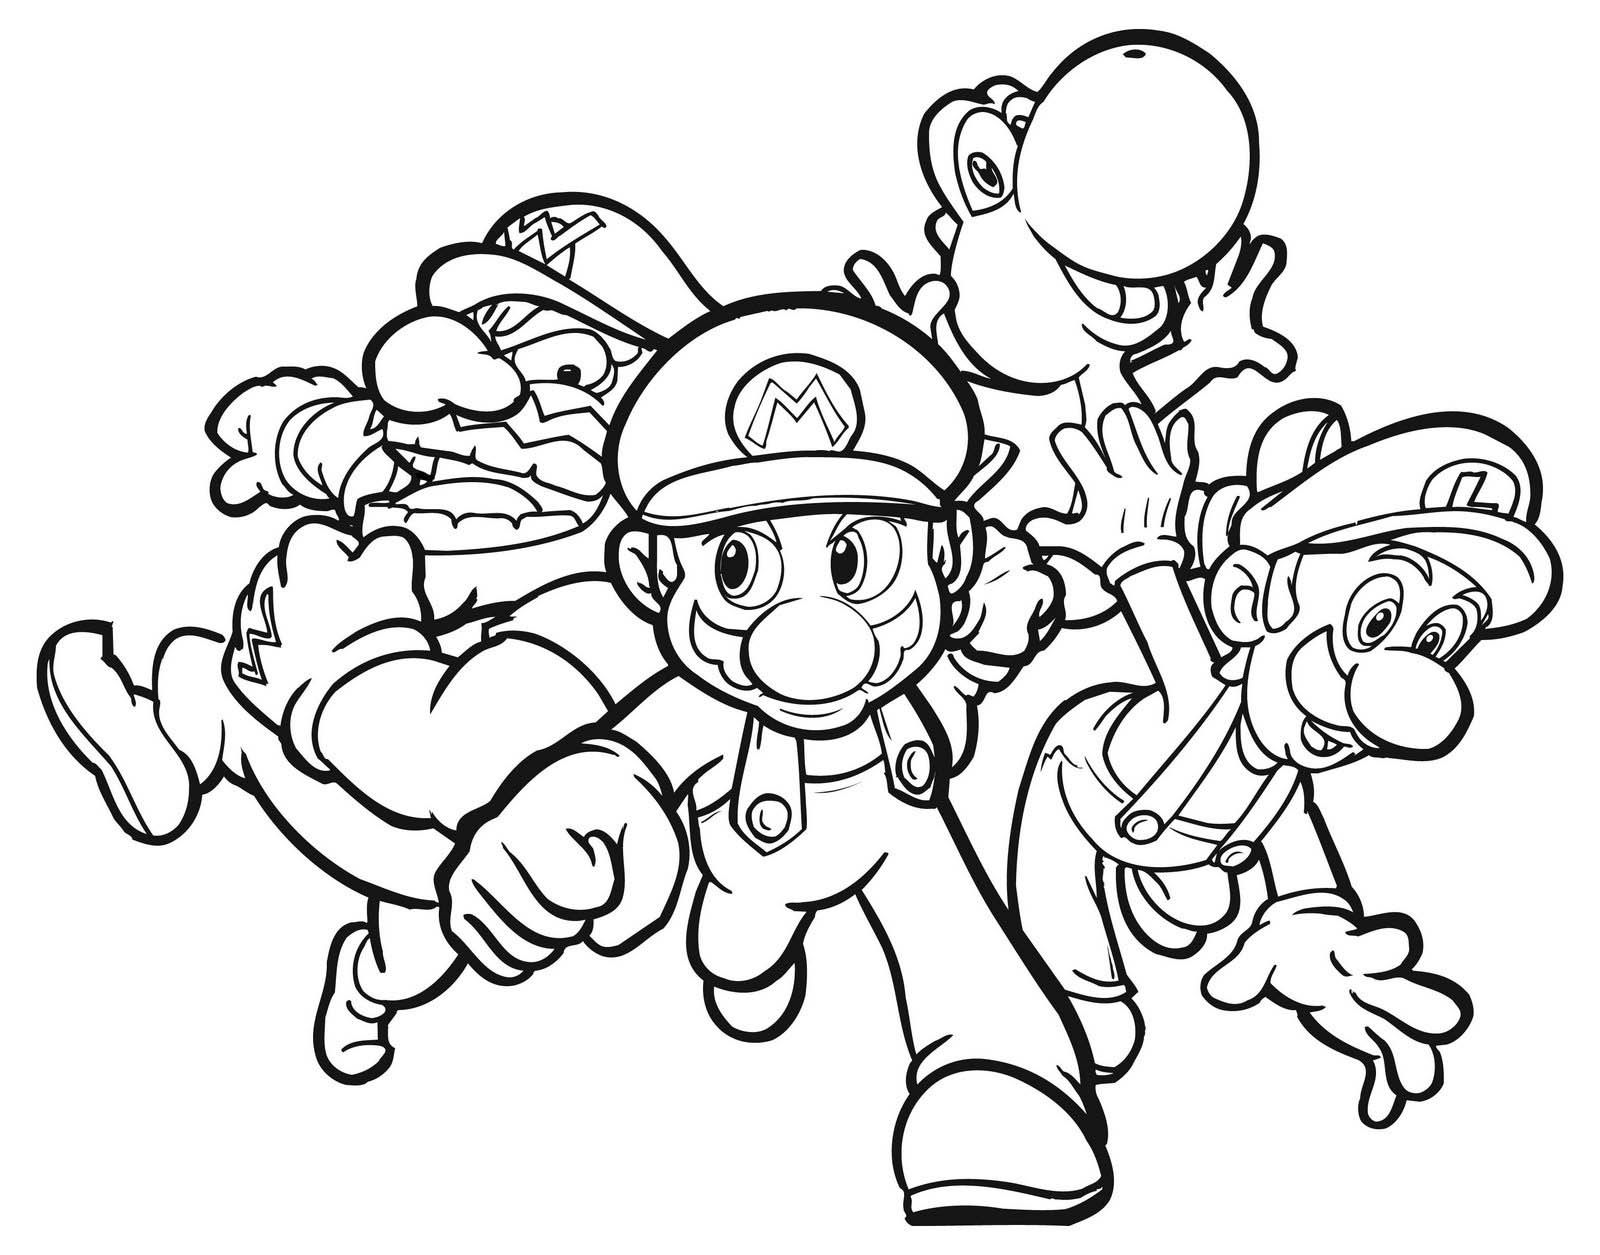 Super Mario Bowser Coloring Pages To Print Mario Coloring Pages ...